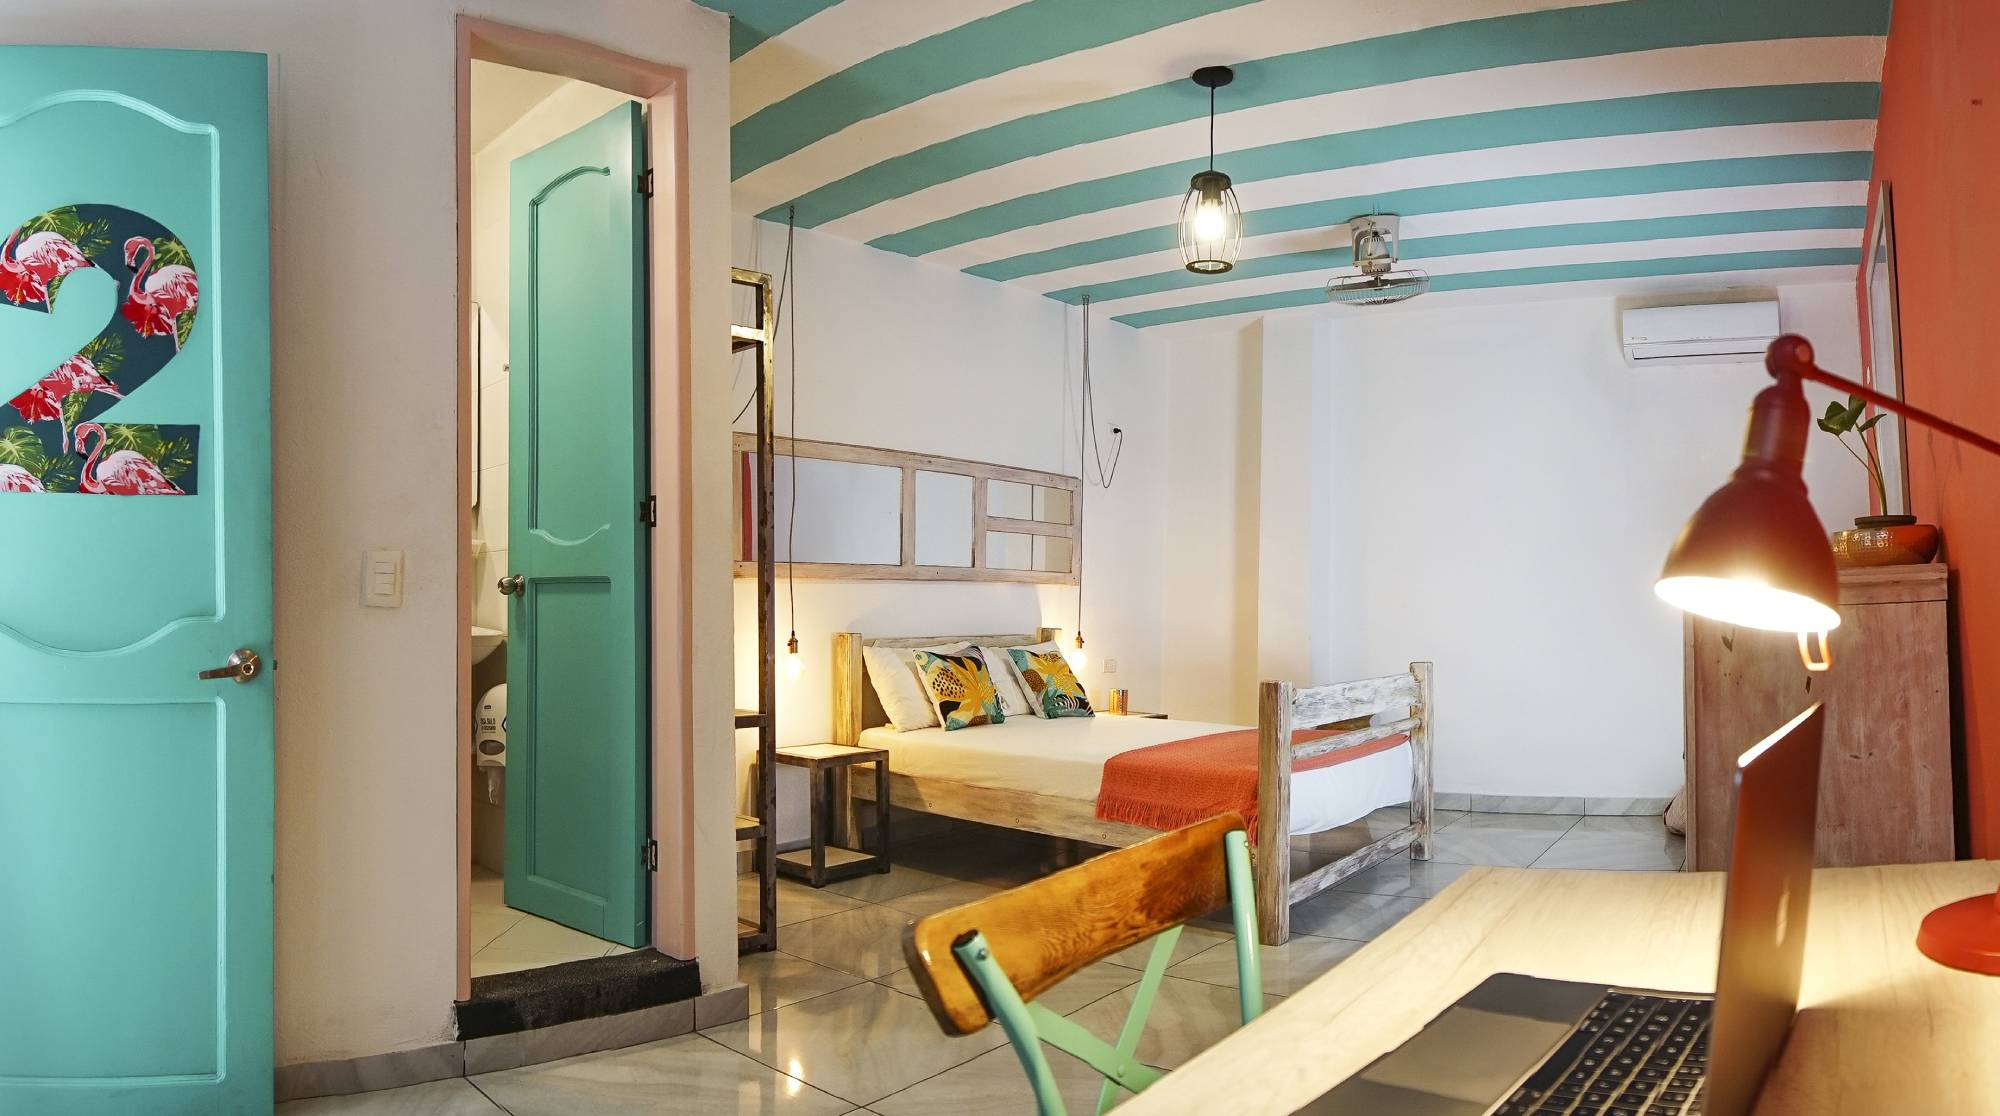 Double Room in Flamingo Coworking & Hostel in Santa Marta Colombia